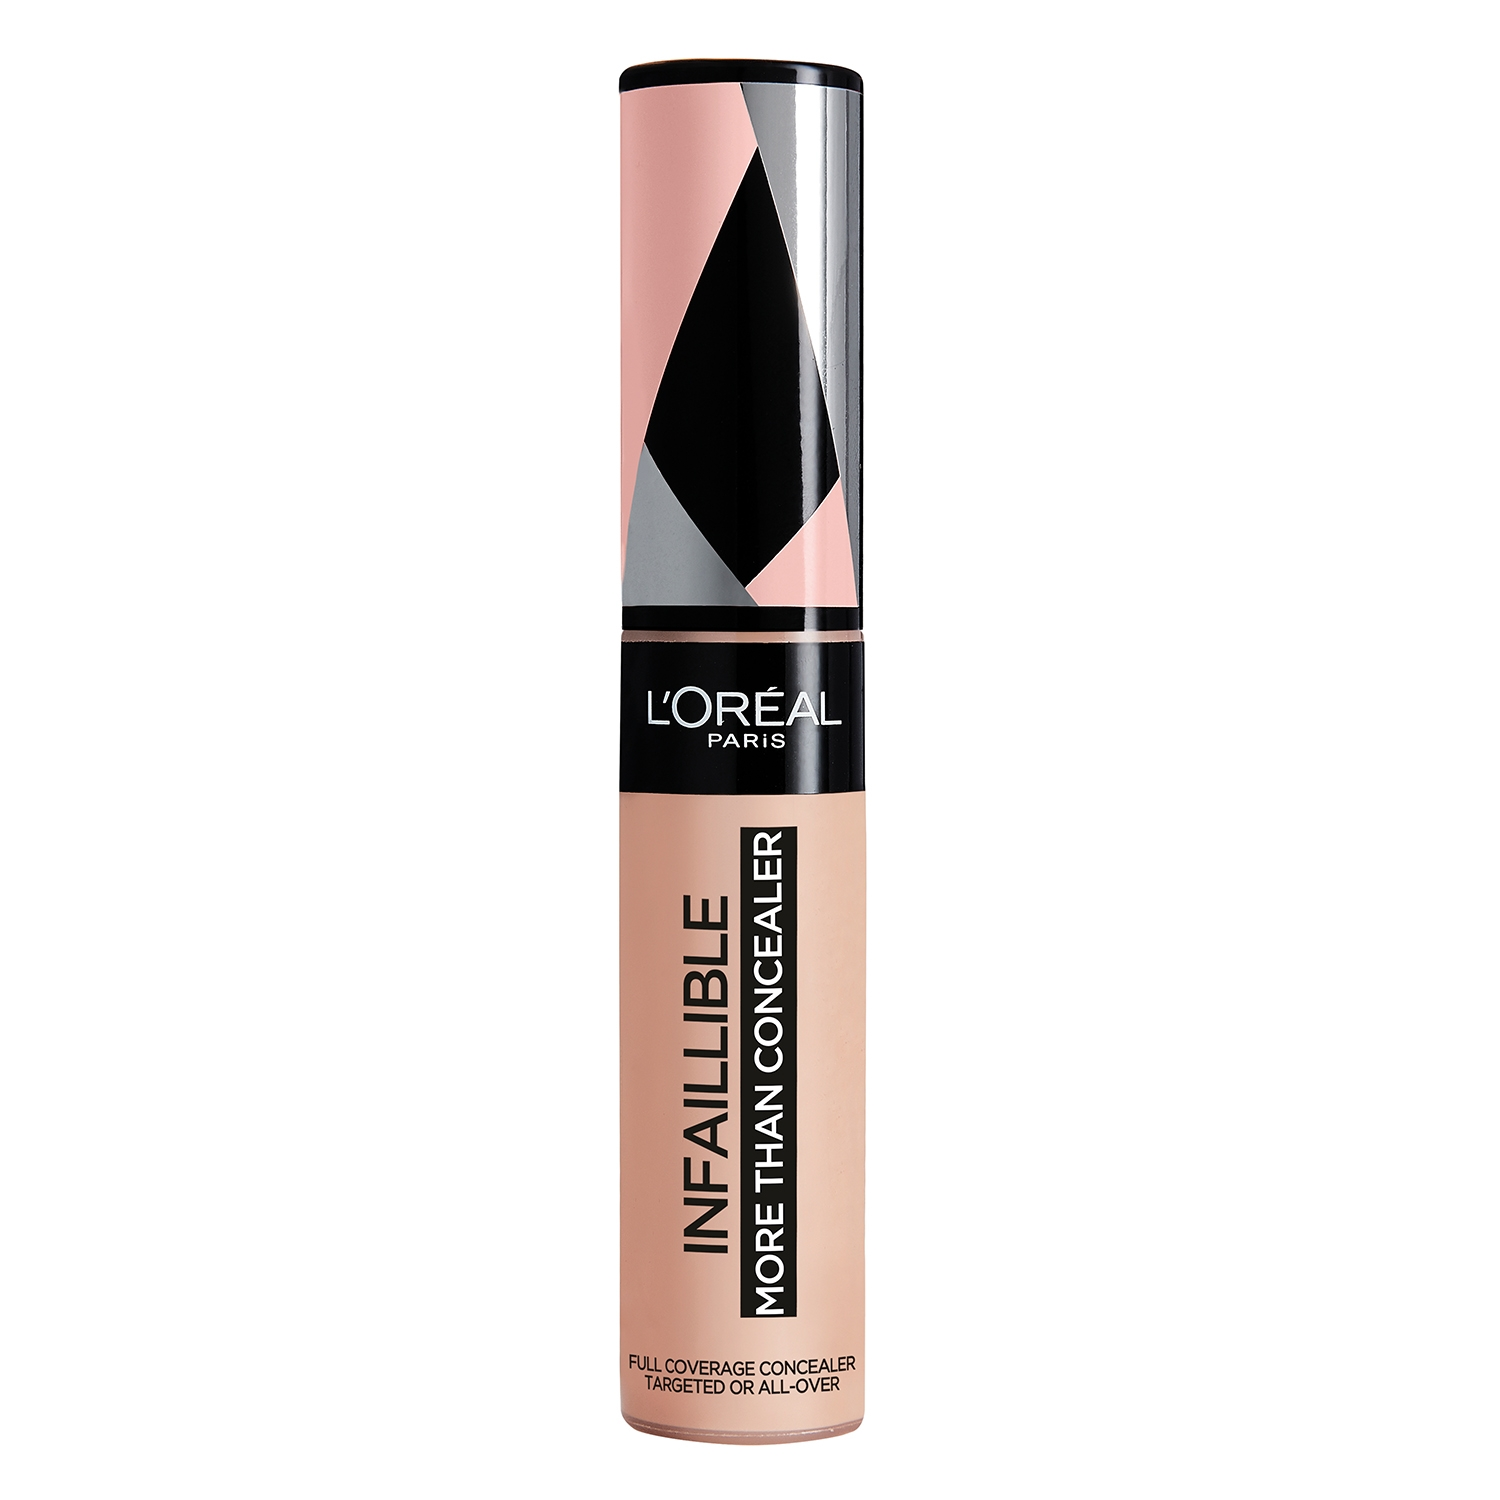 Corrector bisque nº 325 Infalible More Than Concealear Loreal 1 ud.